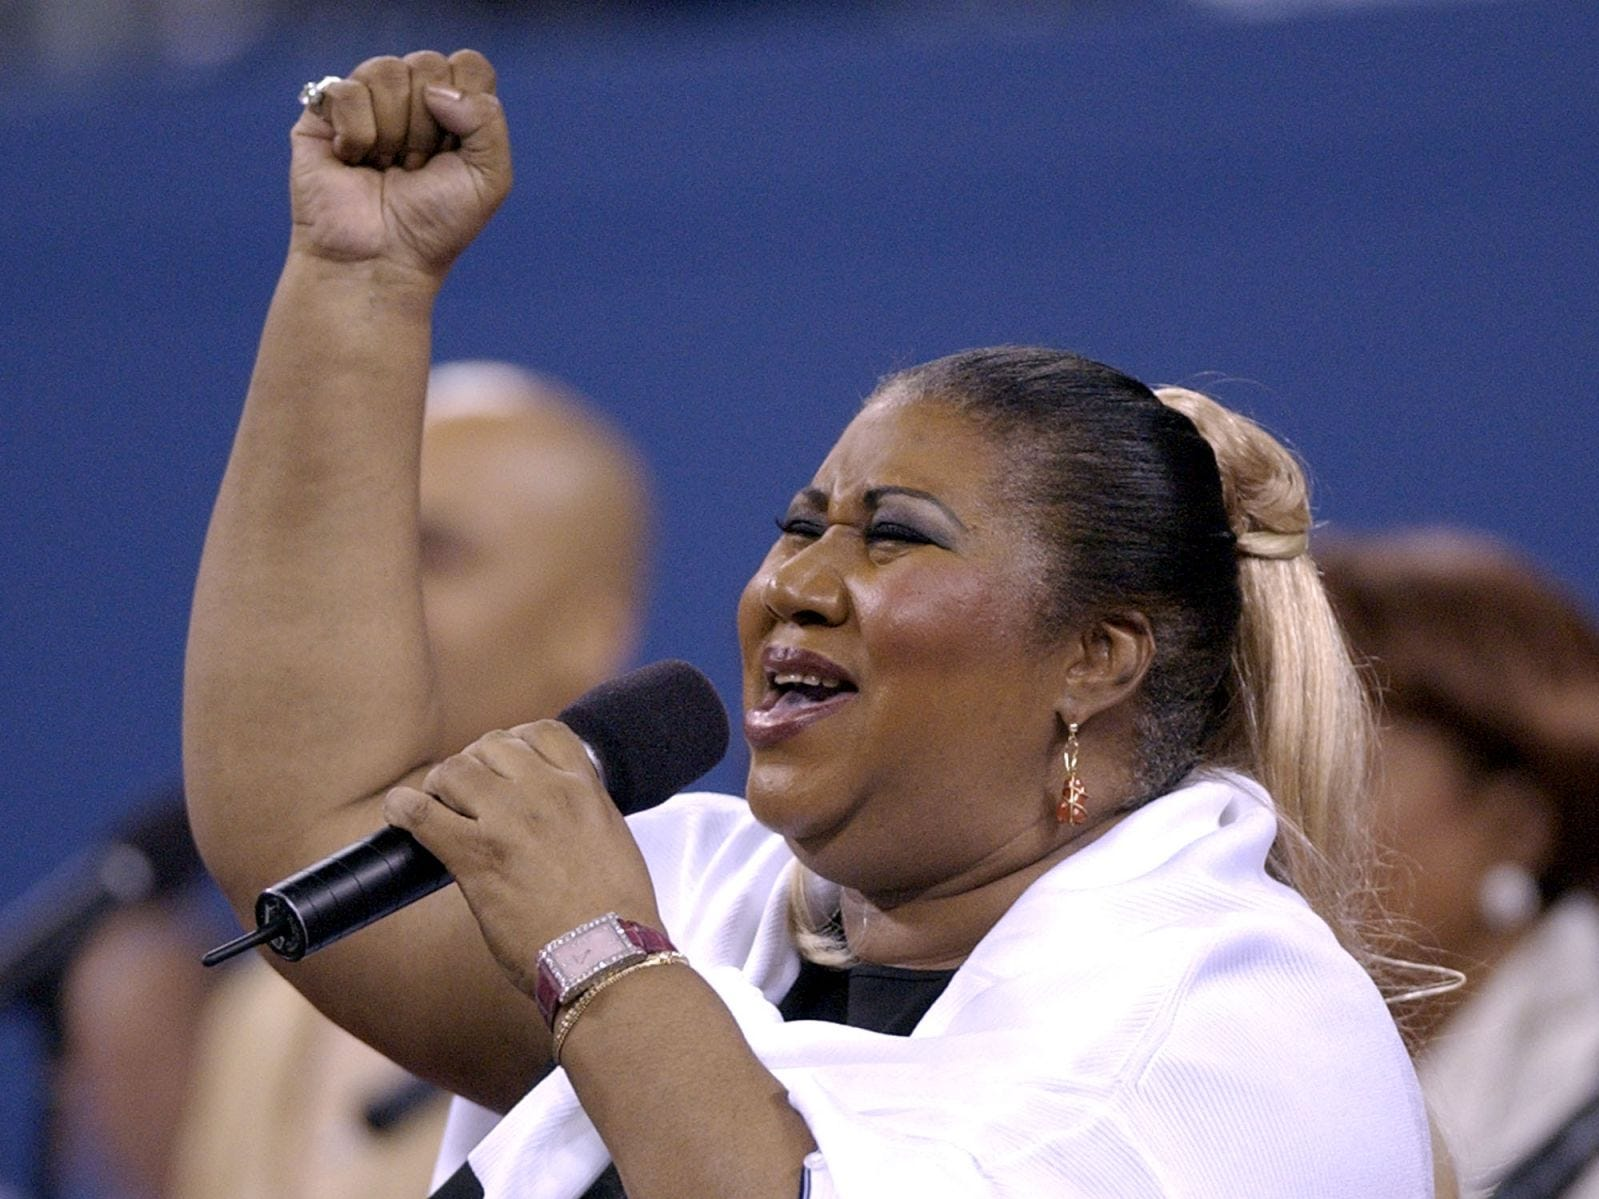 Aretha Franklin sings 'America the Beautiful' before the start of the womens' final between Venus Williams and Serena Williams at the US Open Saturday, Sept. 7, 2002 in New York.